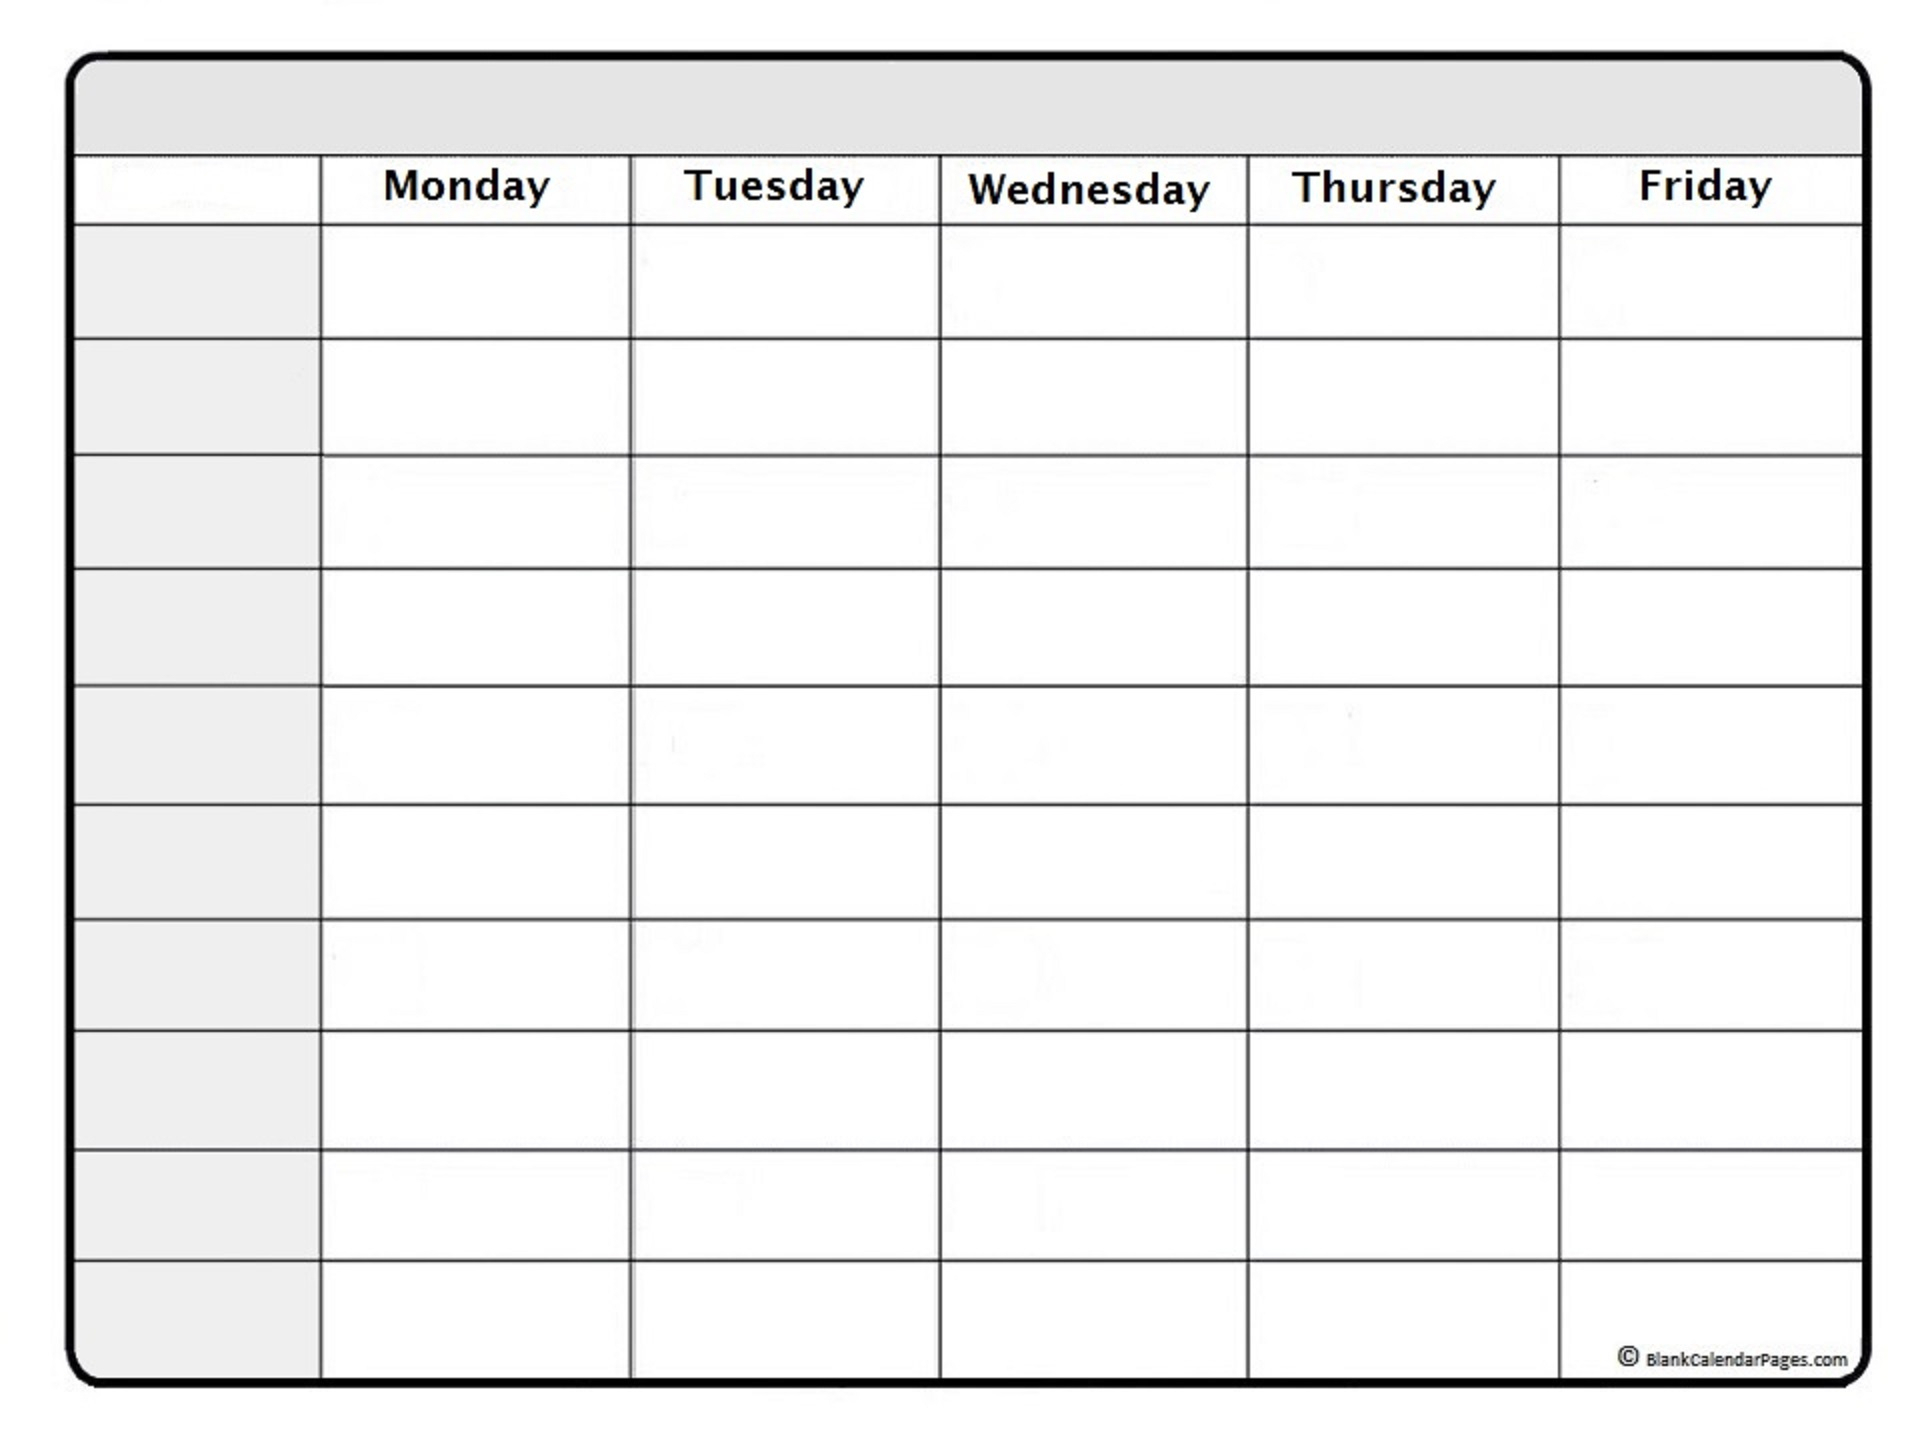 August 2019 Weekly Calendar | August 2019 Weekly Calendar Template in Need A Blank Calendar With Lines